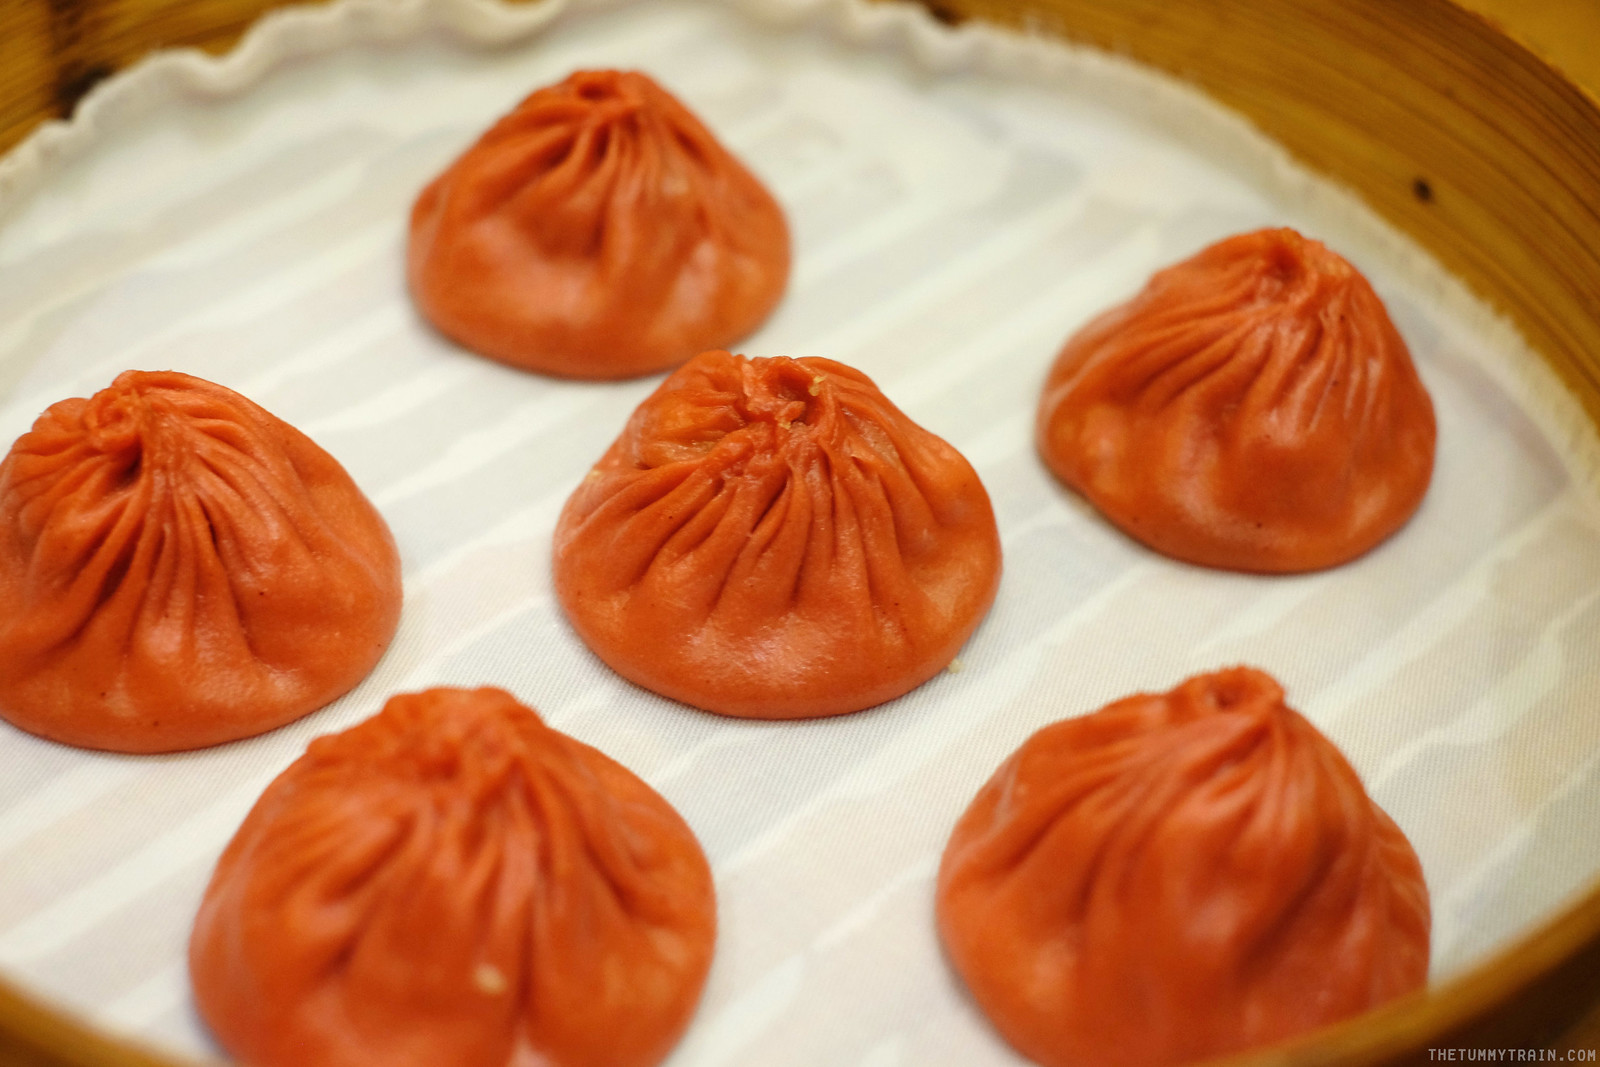 32373452703 940c6f9bc4 h - Sampling the famous colourful xiao long bao at Paradise Dynasty S Maison